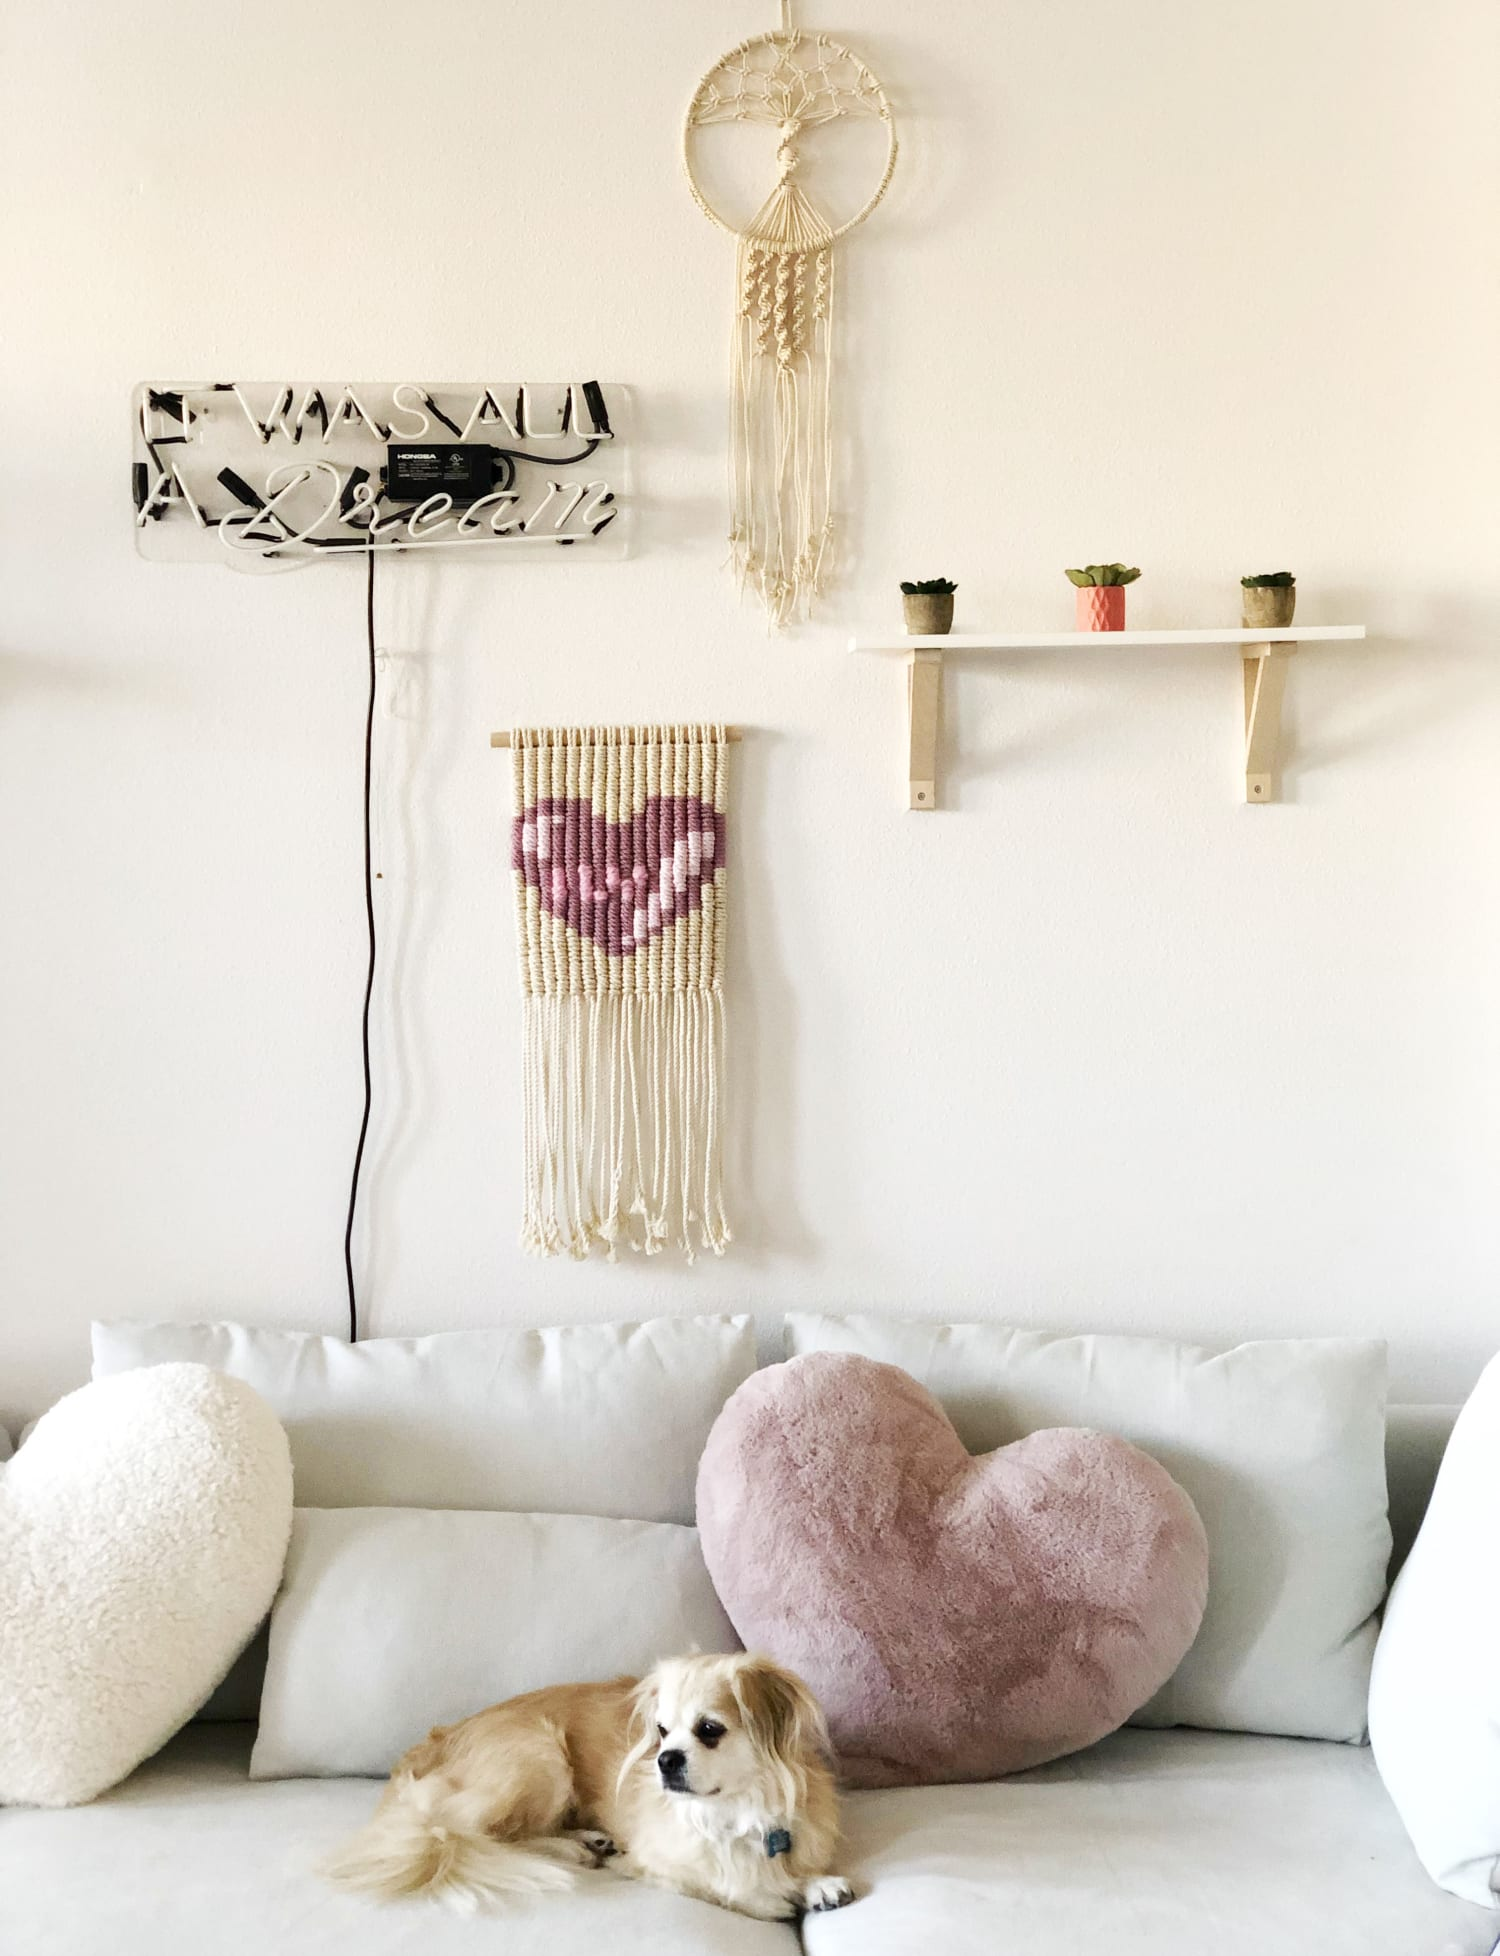 Macrame wall hanging with heart